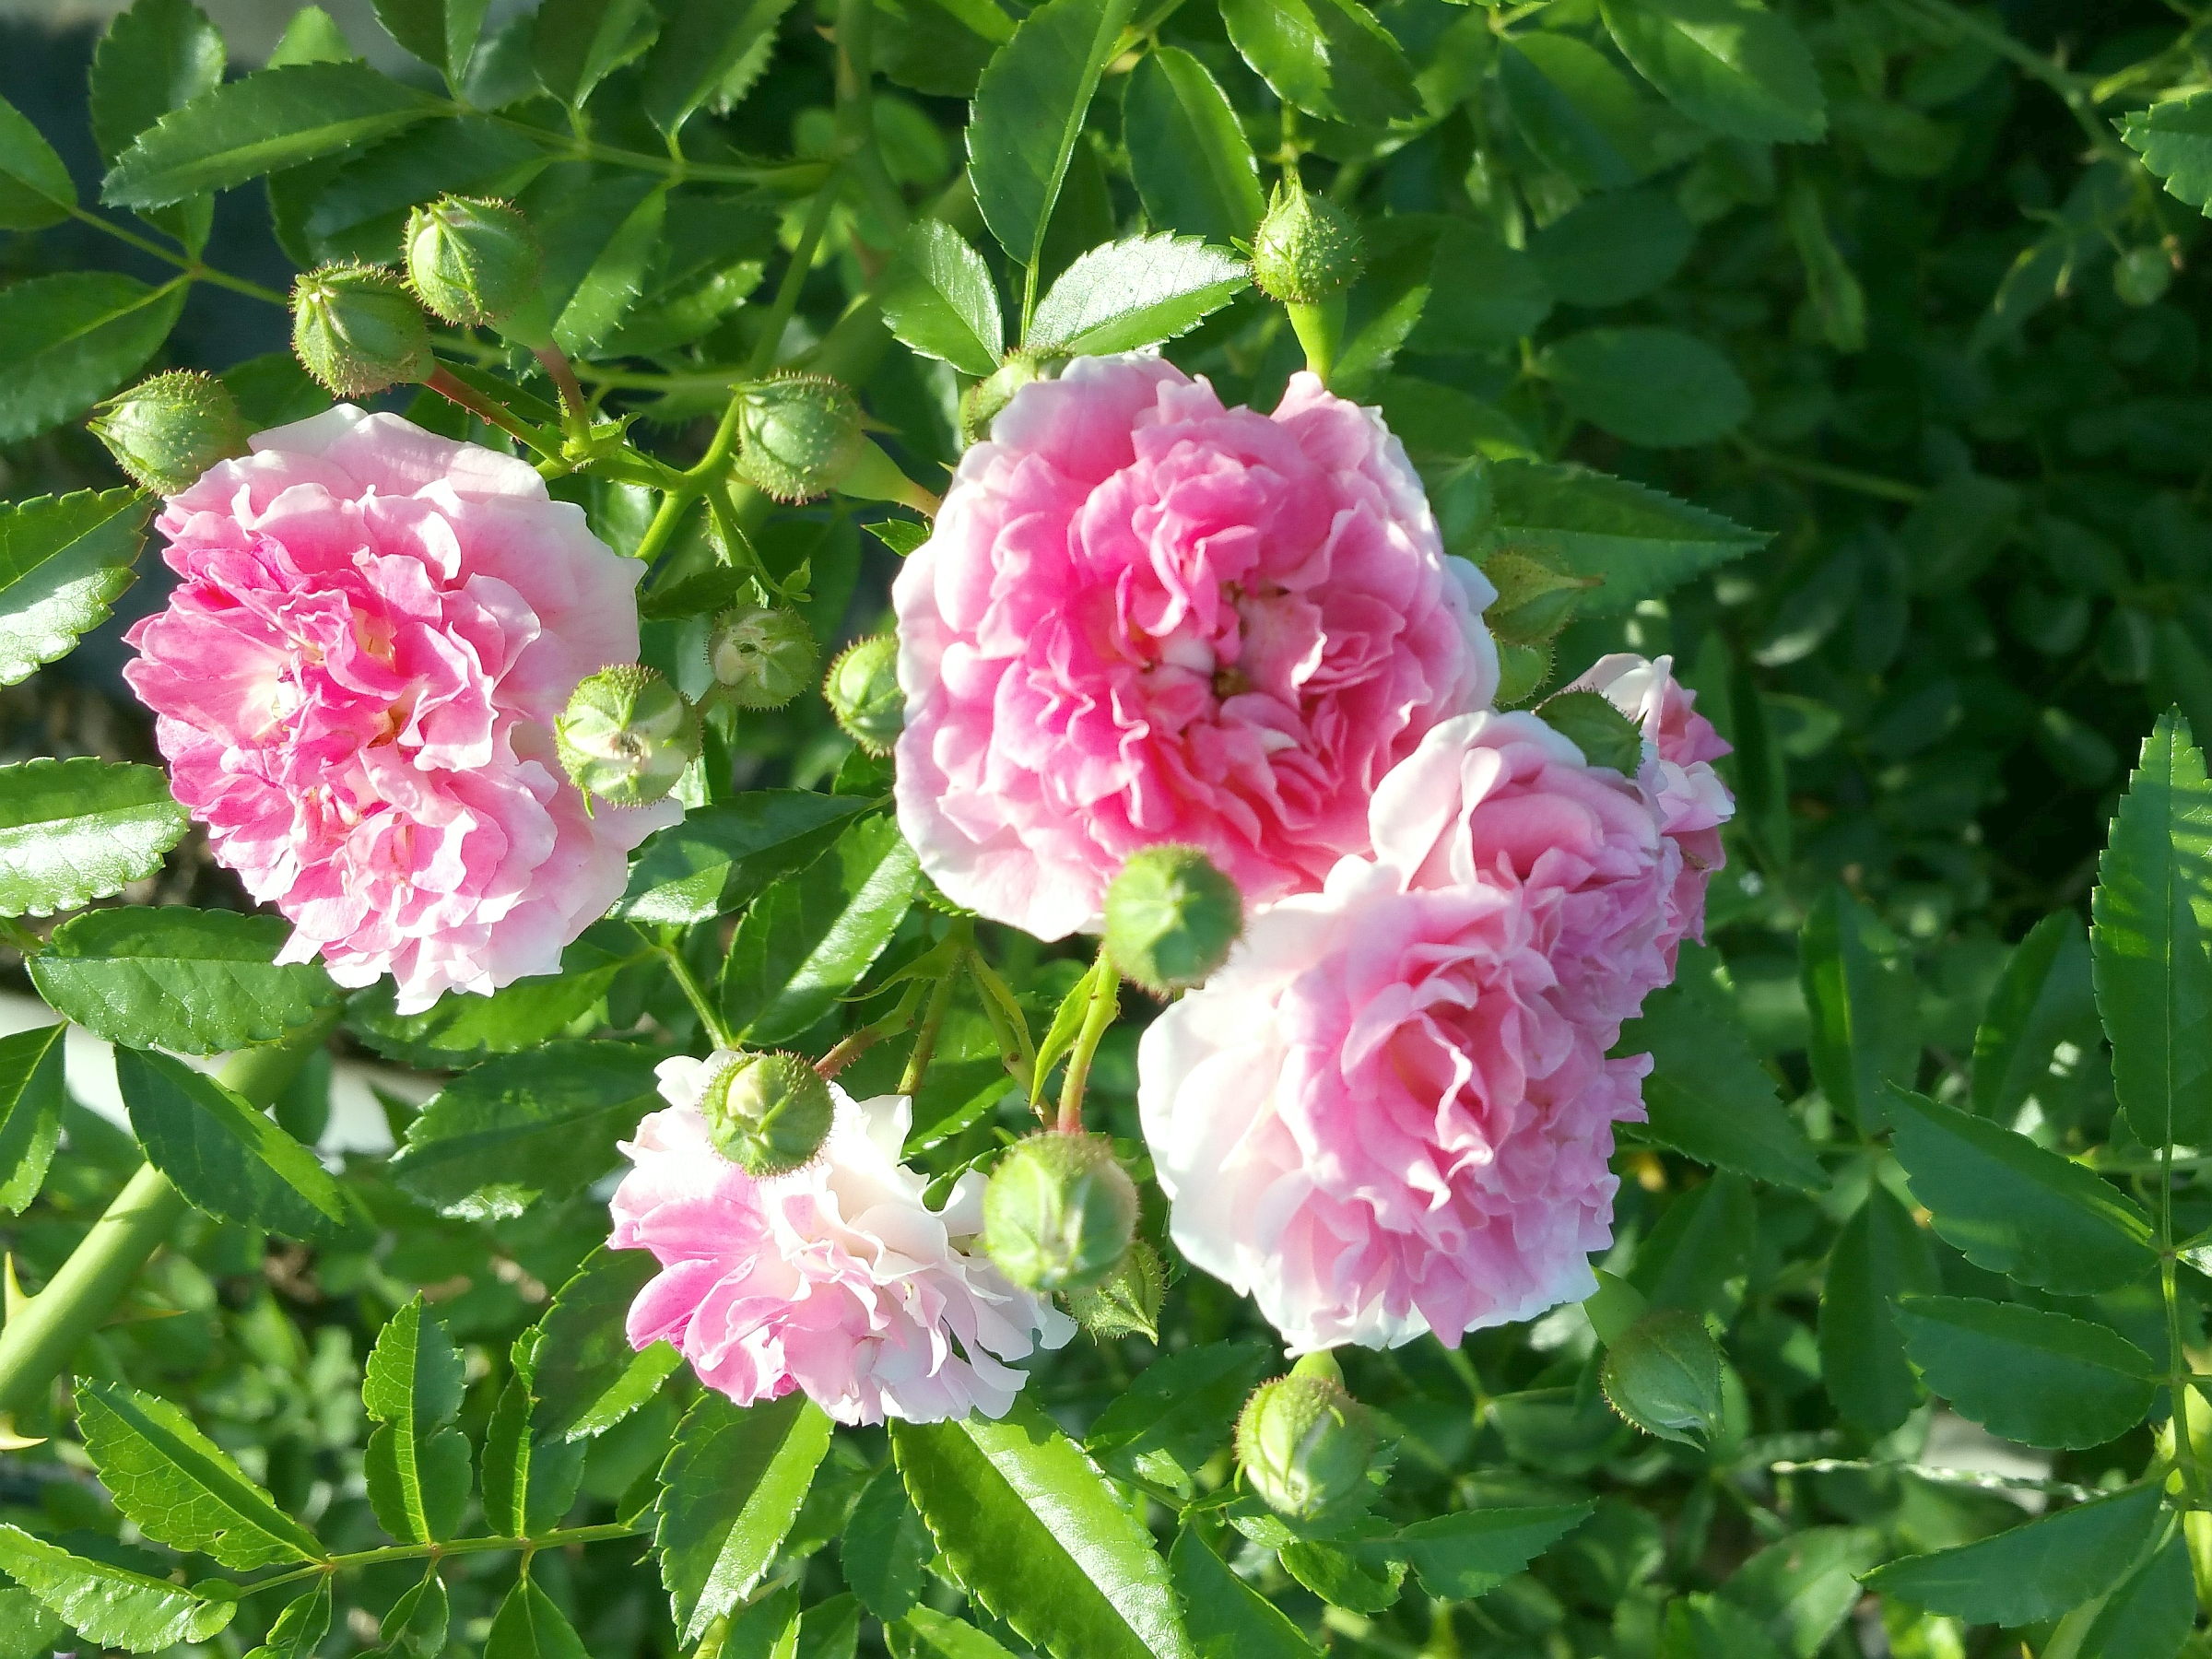 SEVEN SISTERS Old Garden Antique Heirloom Climbing Rambler Rose Bush Live Plant Double Pink Starter Size 4 Inch Pot Emeralds TM - Click Image to Close